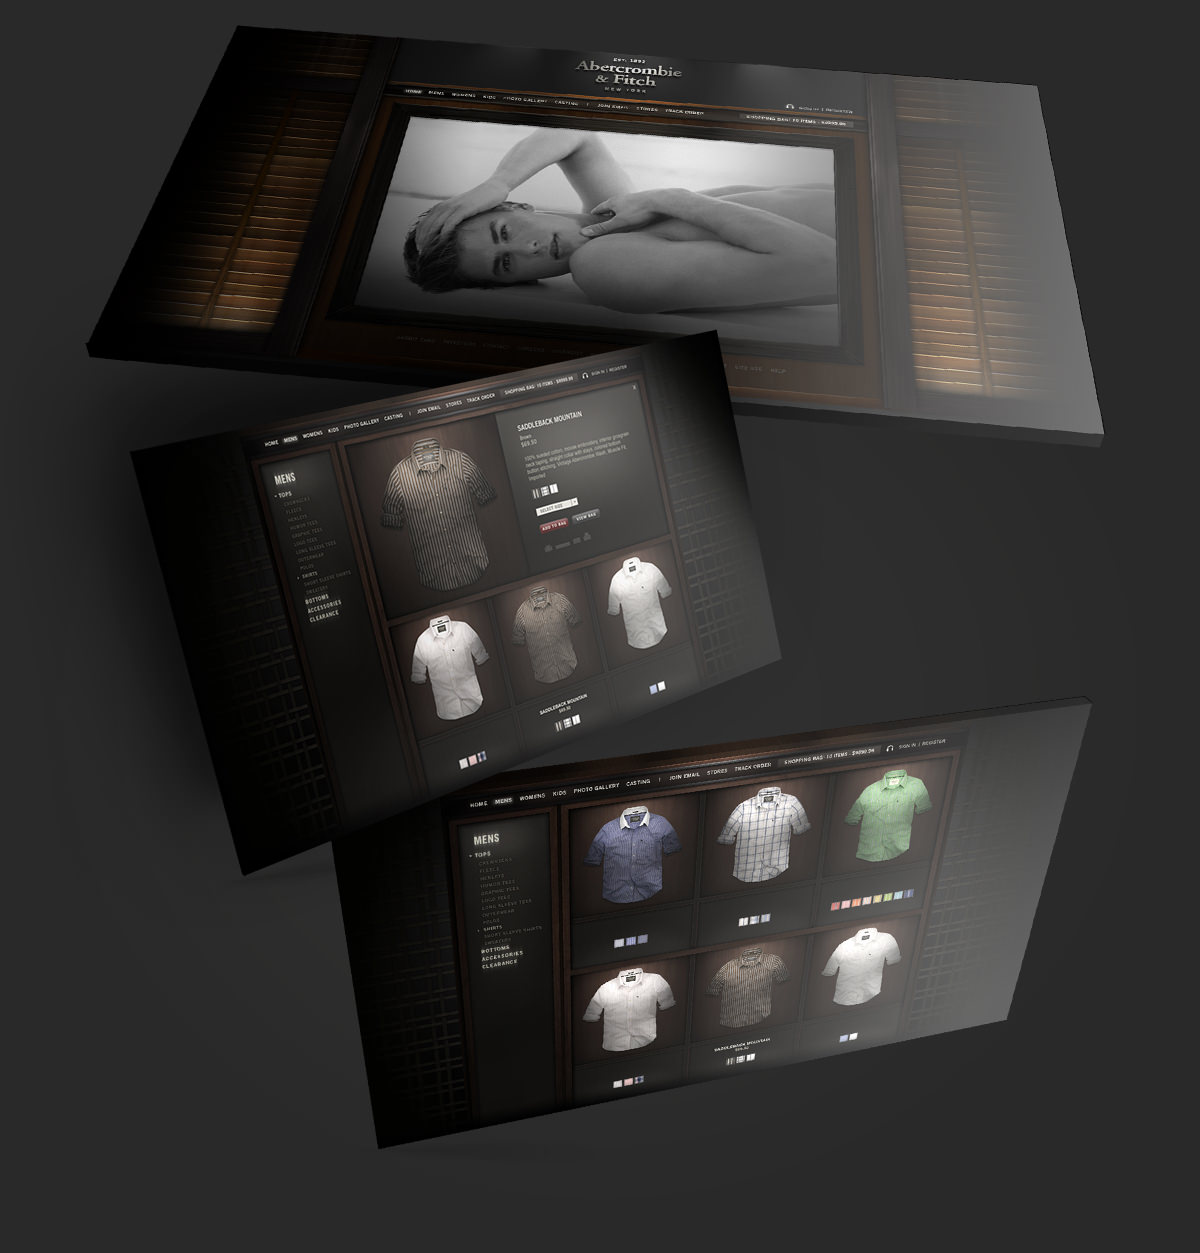 Abercrombie & Fitch Redesign Concept by Jeff Rigsby